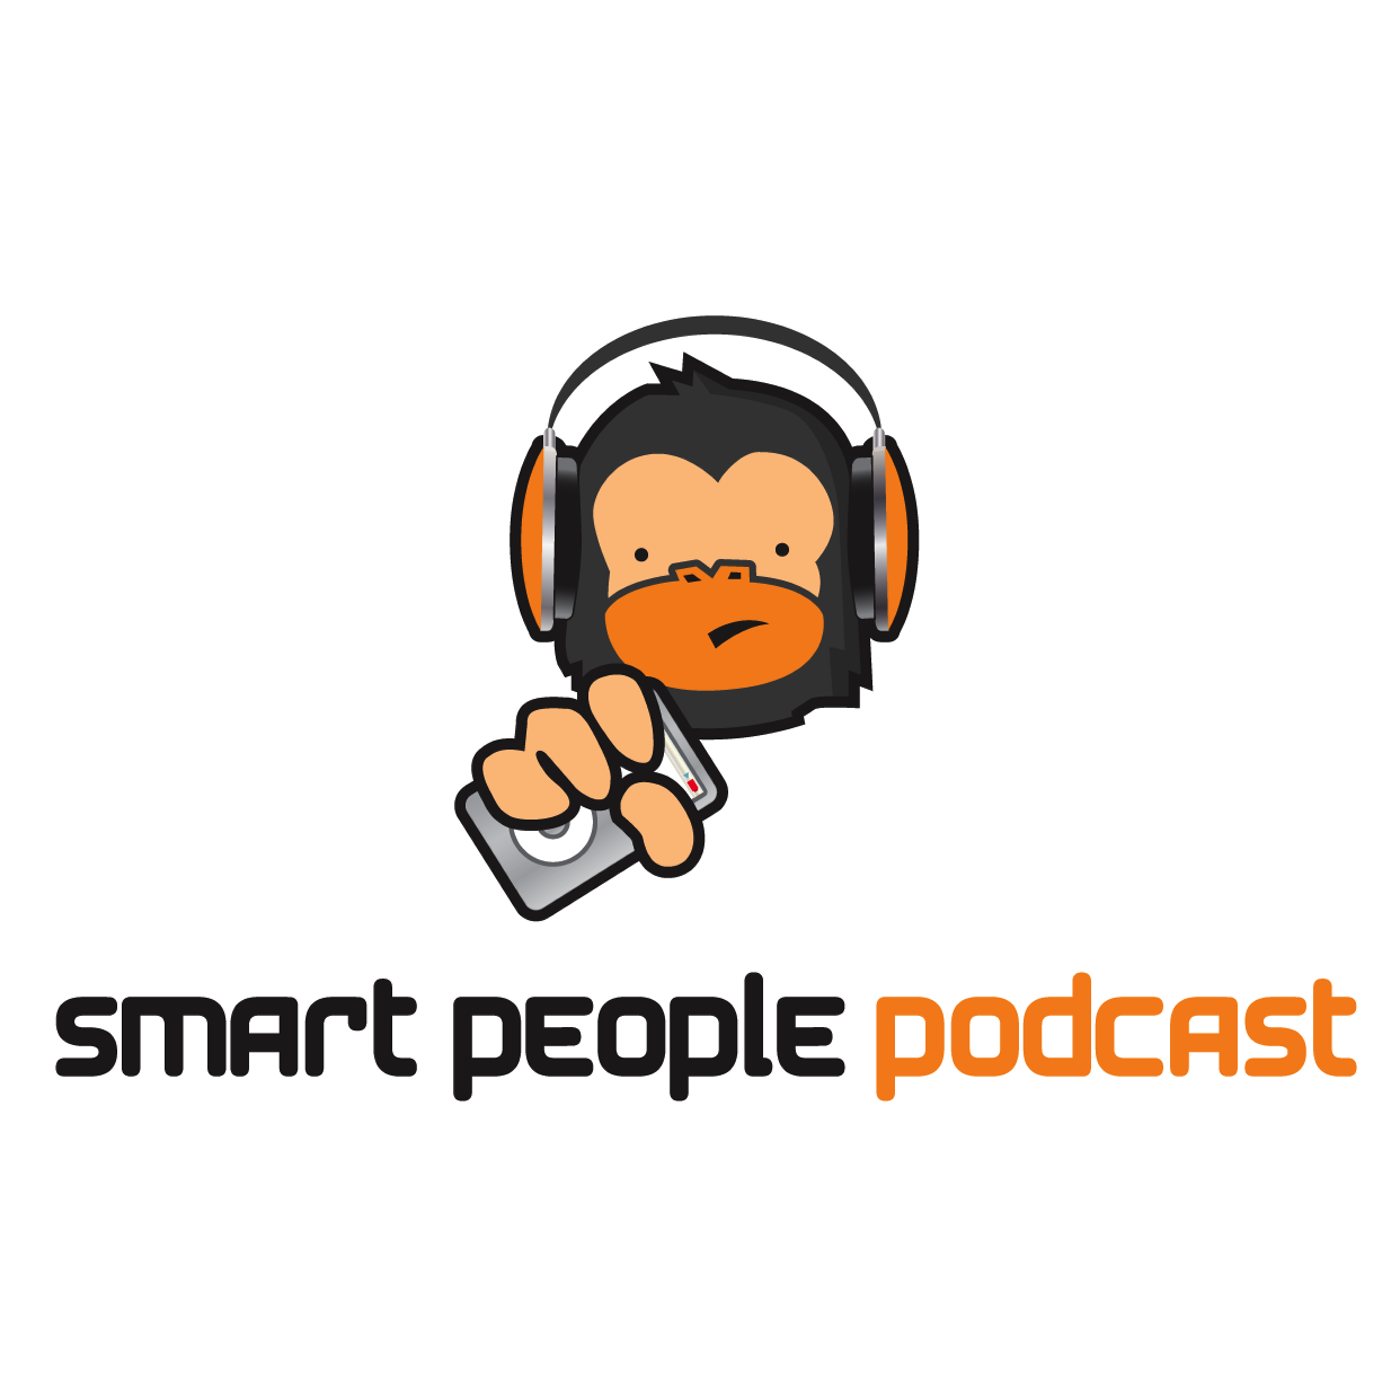 Smart People Podcast | Interviews in Education, Creativity, Business, and more!